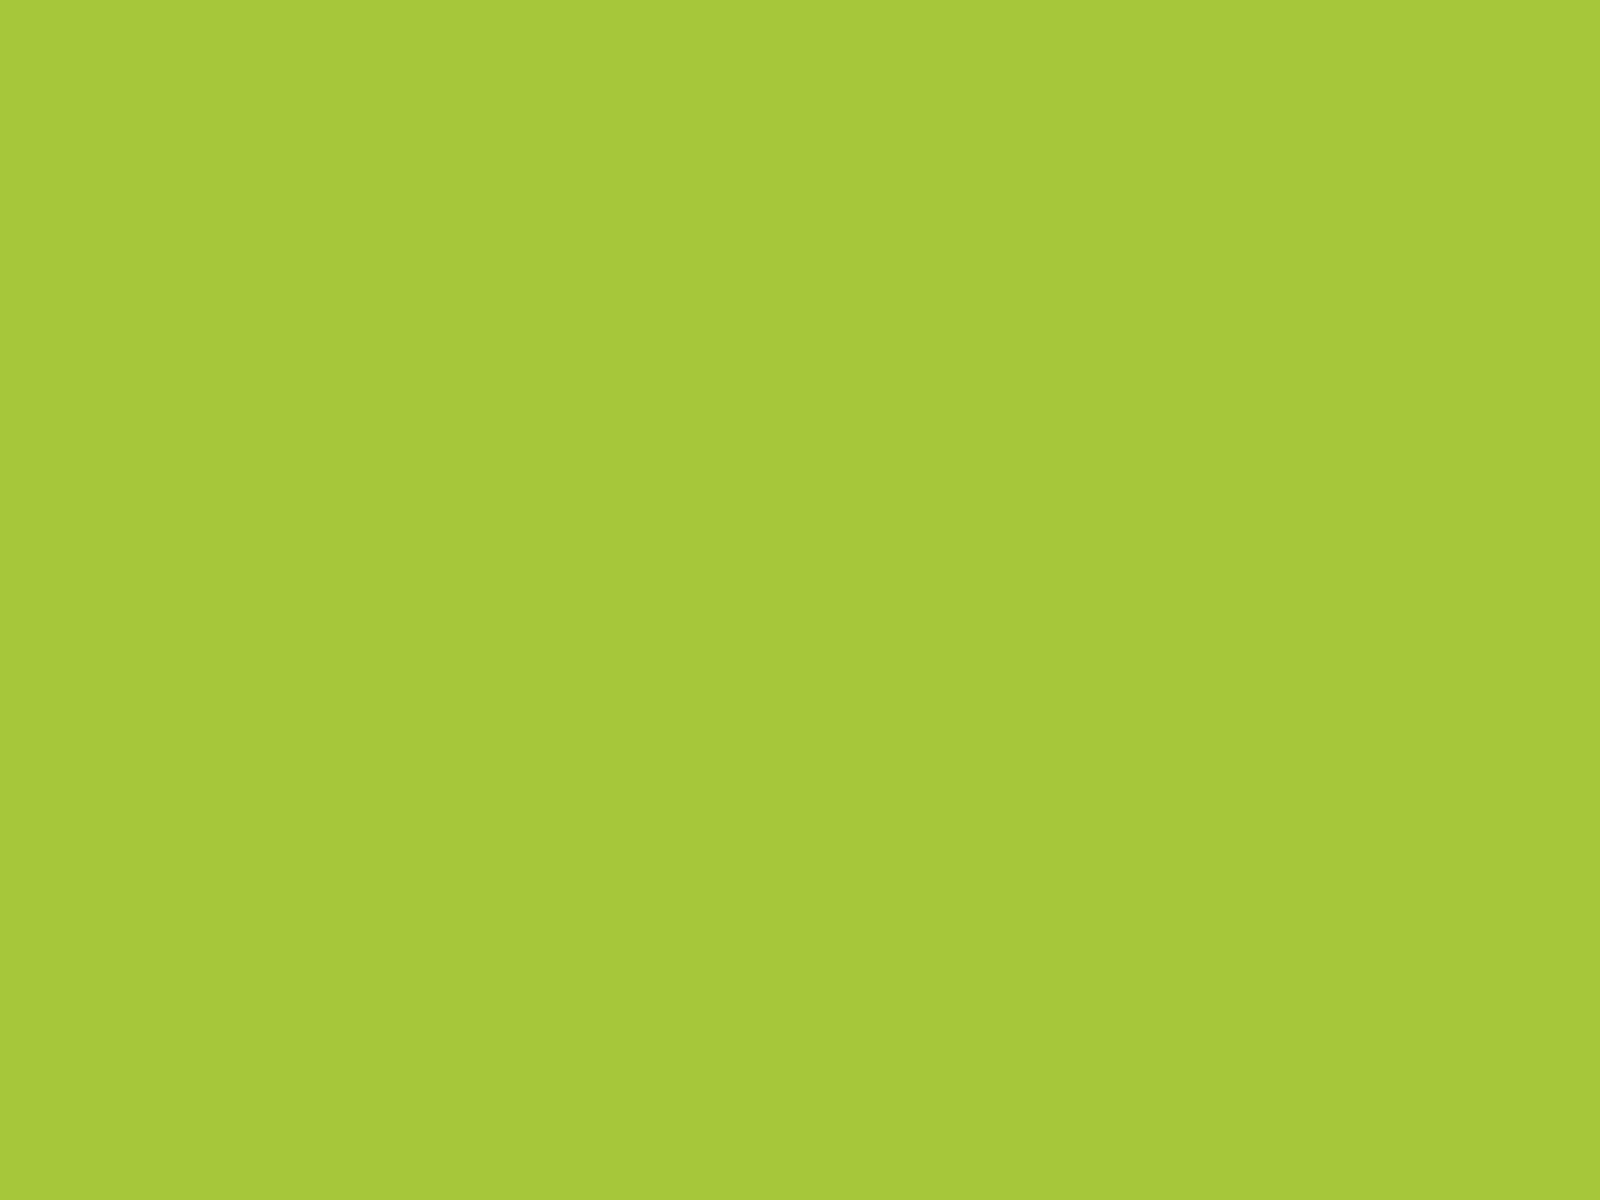 1600x1200 Android Green Solid Color Background